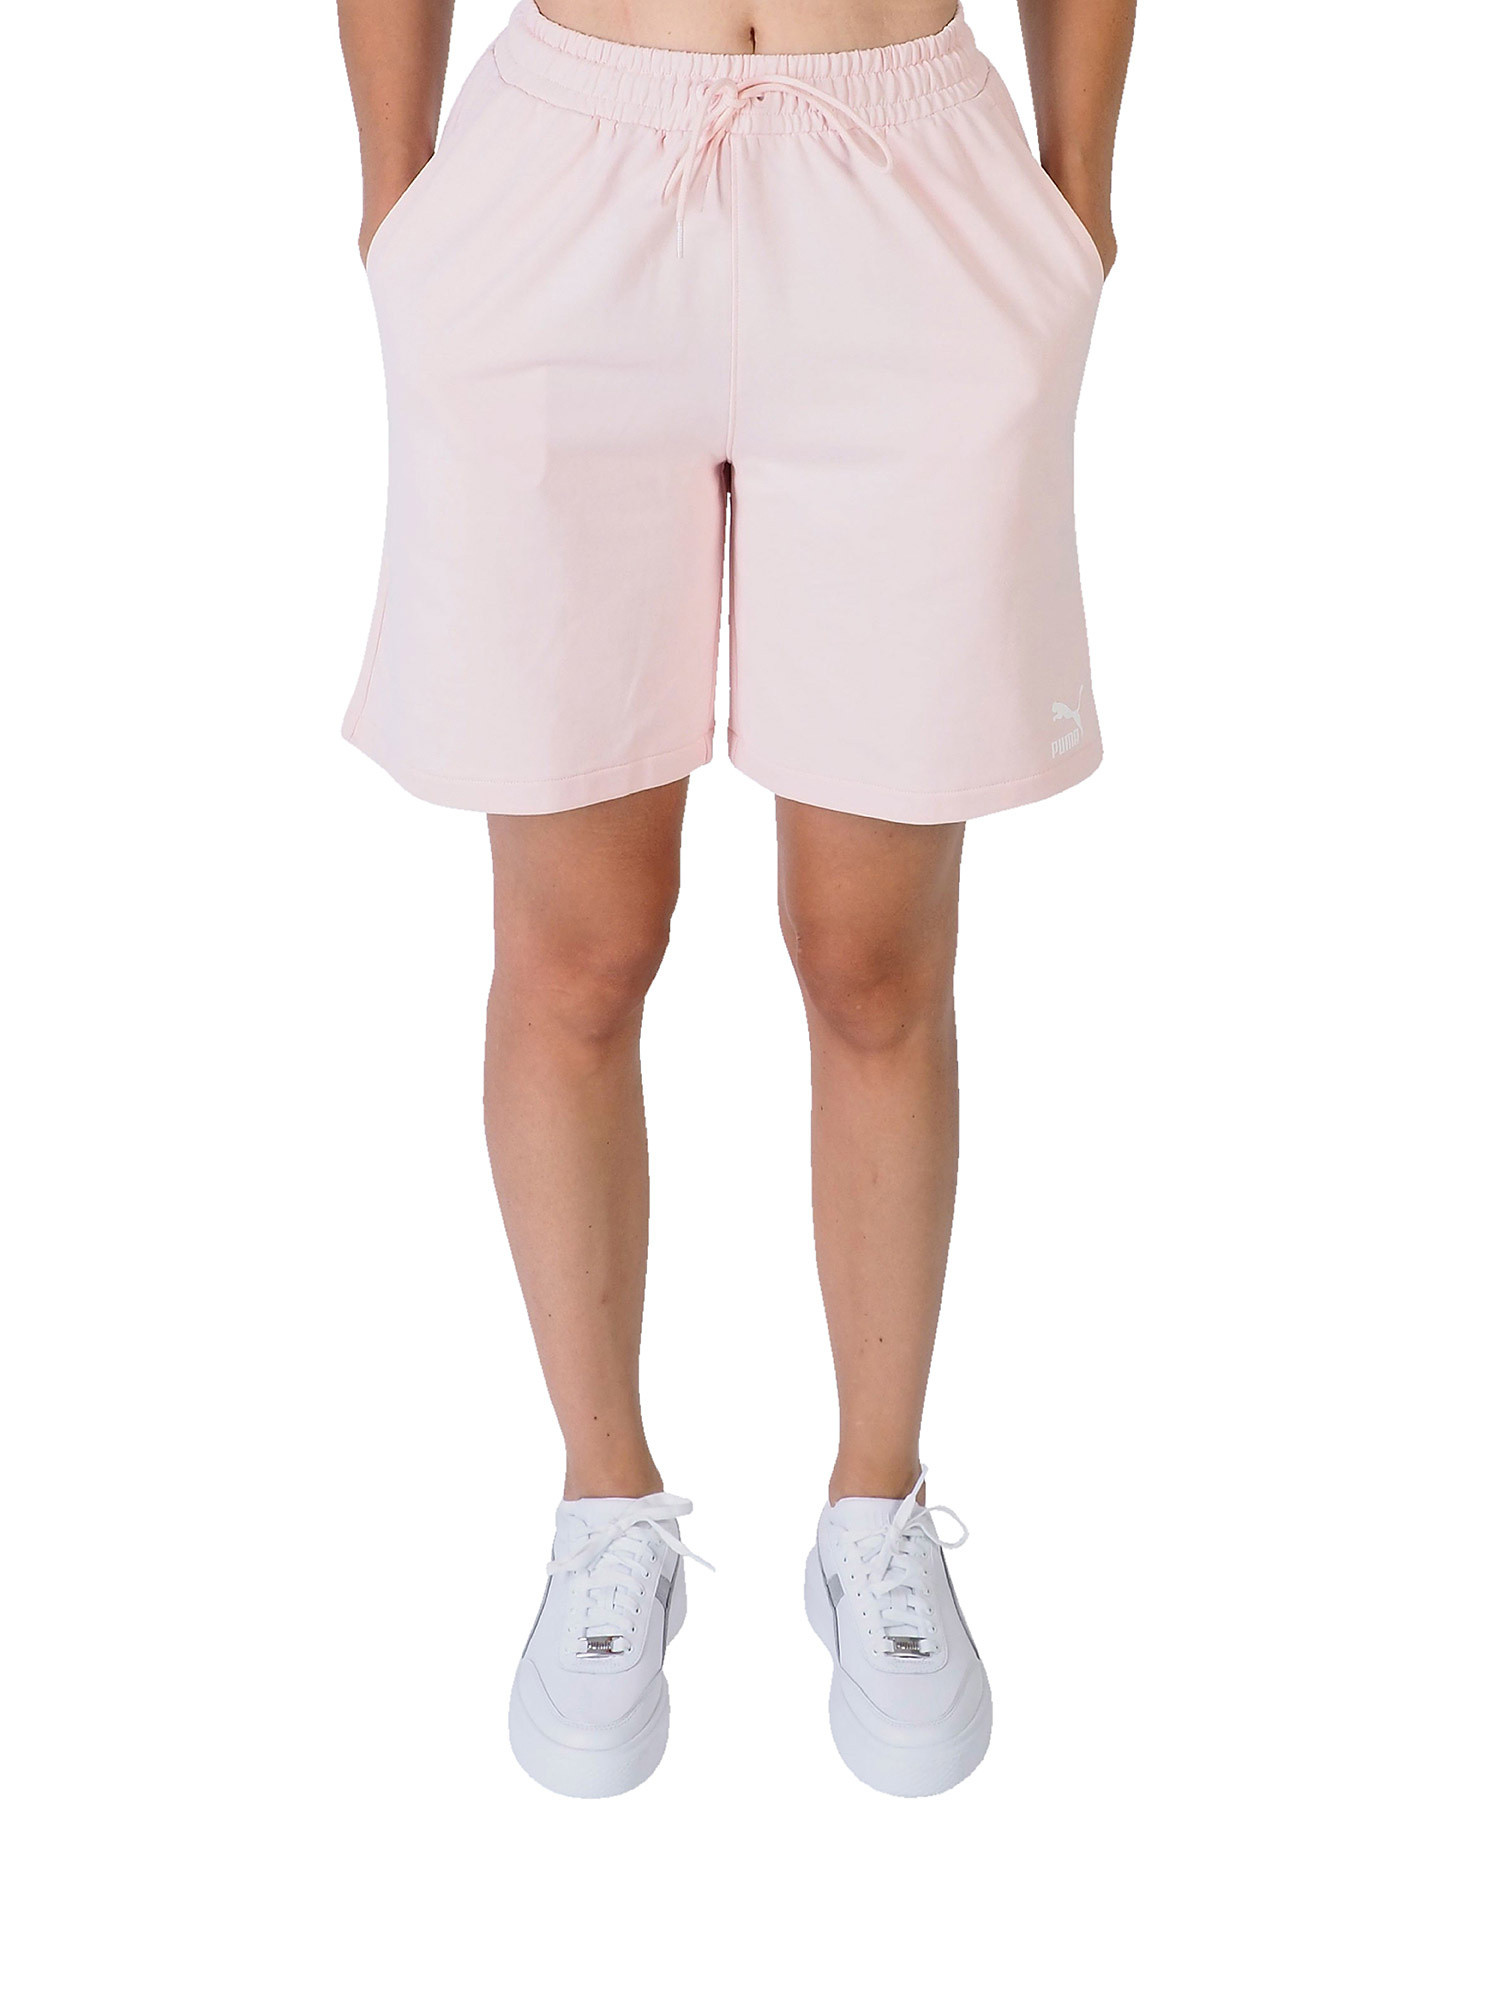 Knitted Shorts, Rosa, large image number 2